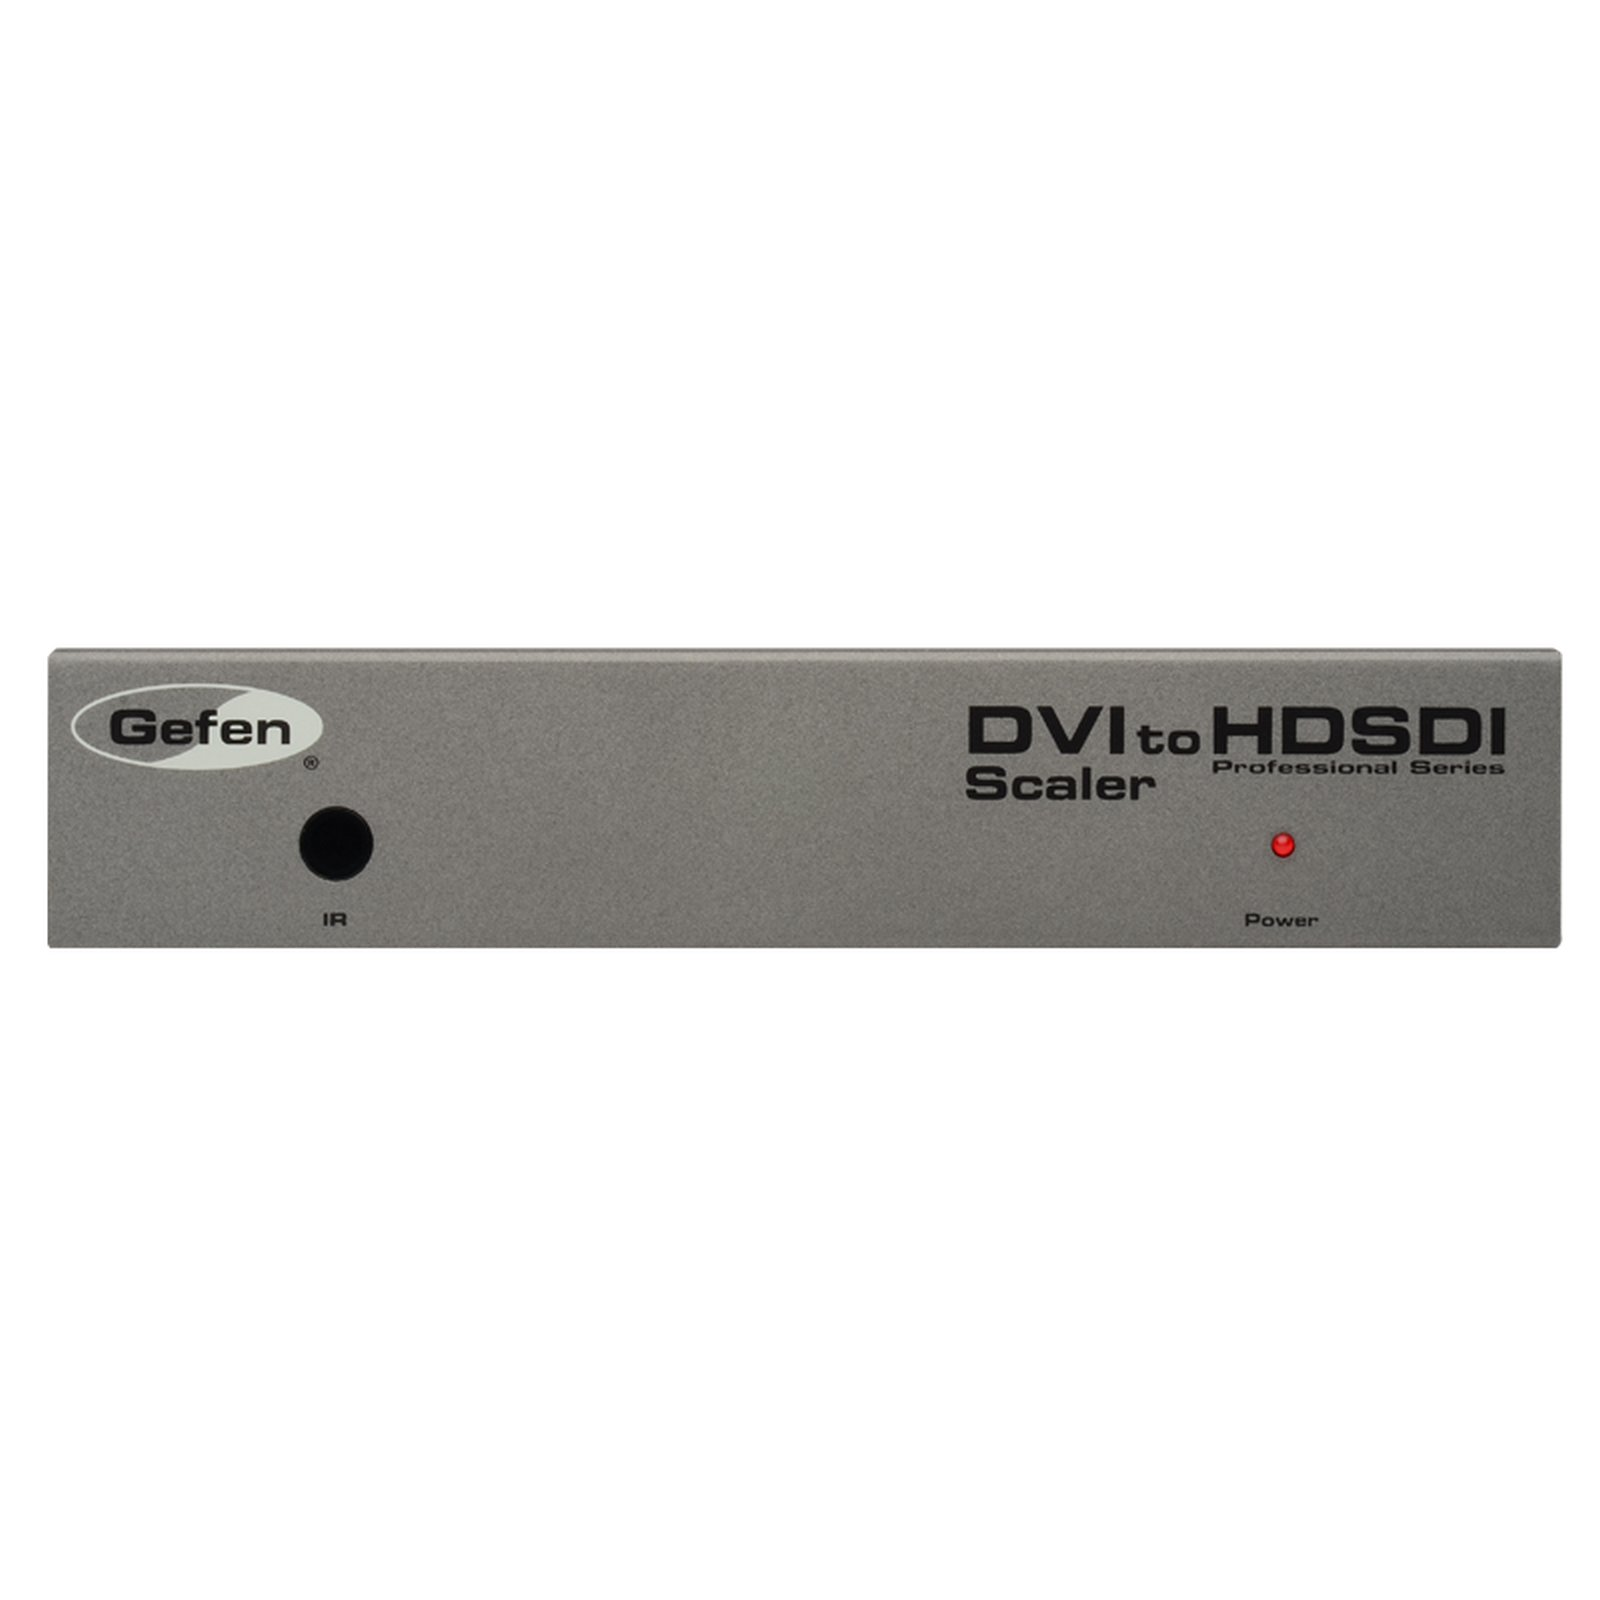 Gefen EXT-DVI-2-HDSDISSL DVI to HD-SDI Single Link Video Scaler - Proprietary